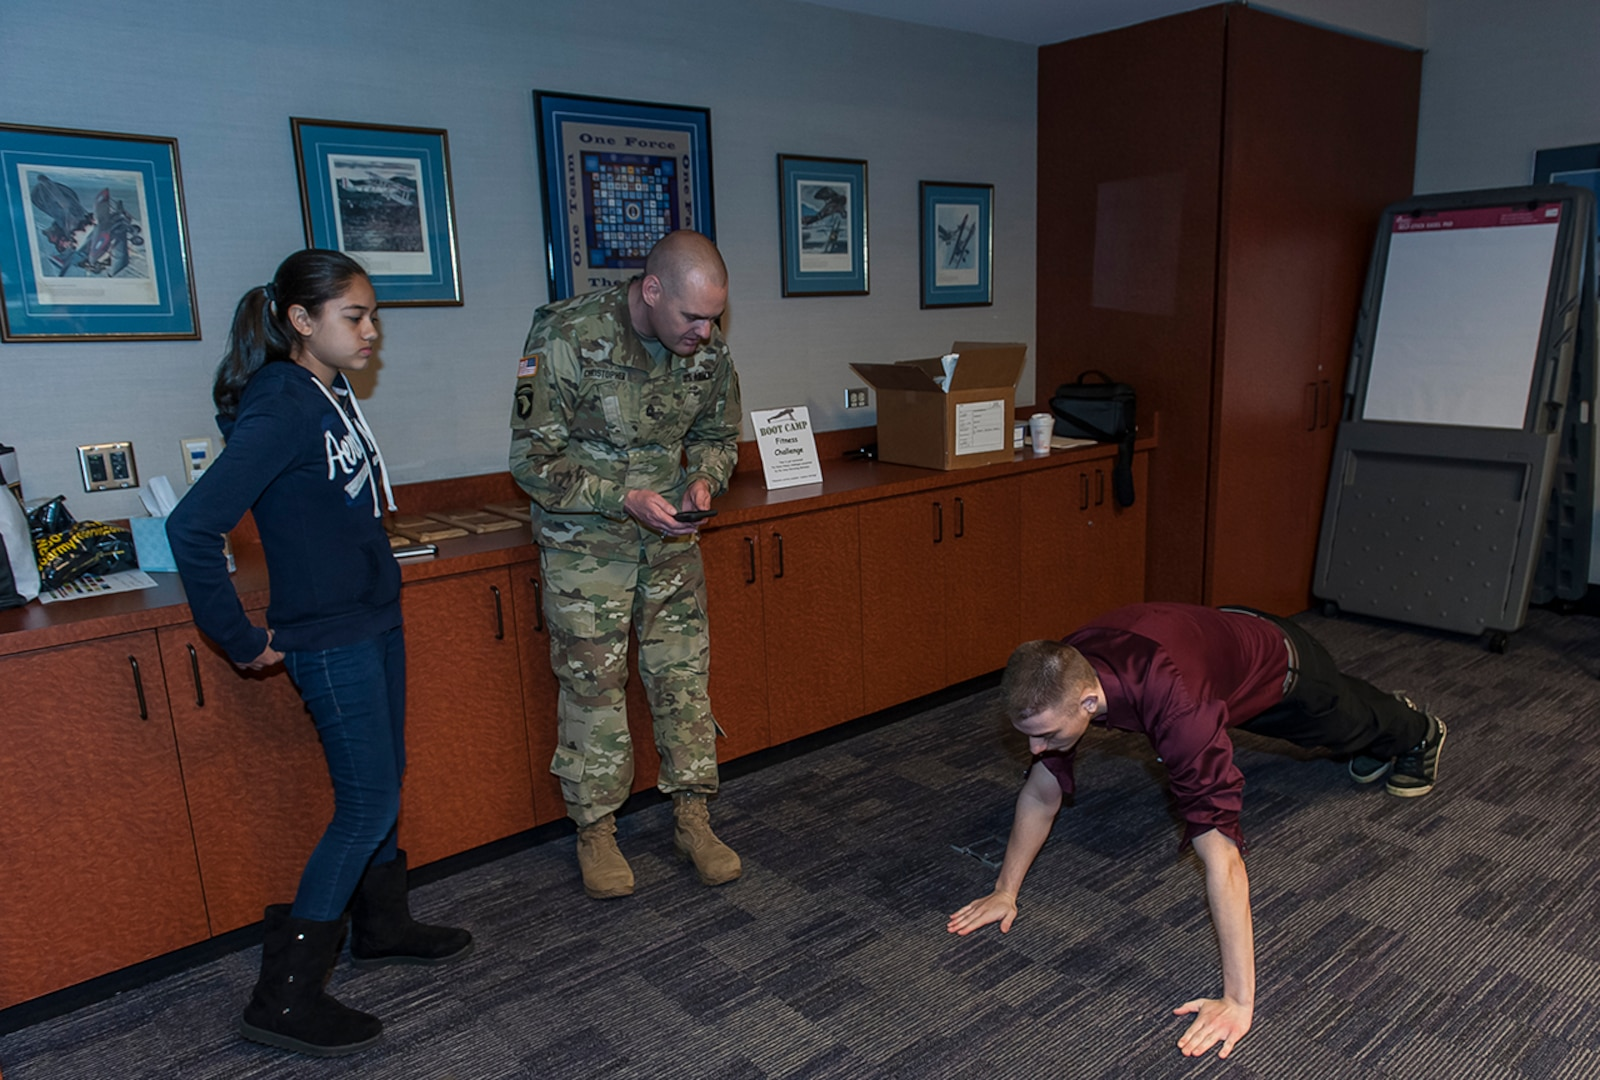 Matthew Rush, 16, performs pushups during the Fitness Challenge at DSCC's 'Take our daughters and sons to work day'. Rush was one of more than 100 children aged 9-17 who attended the April 27 event aimed at educating children about the contributions their parents and guardians make to warfighter support.